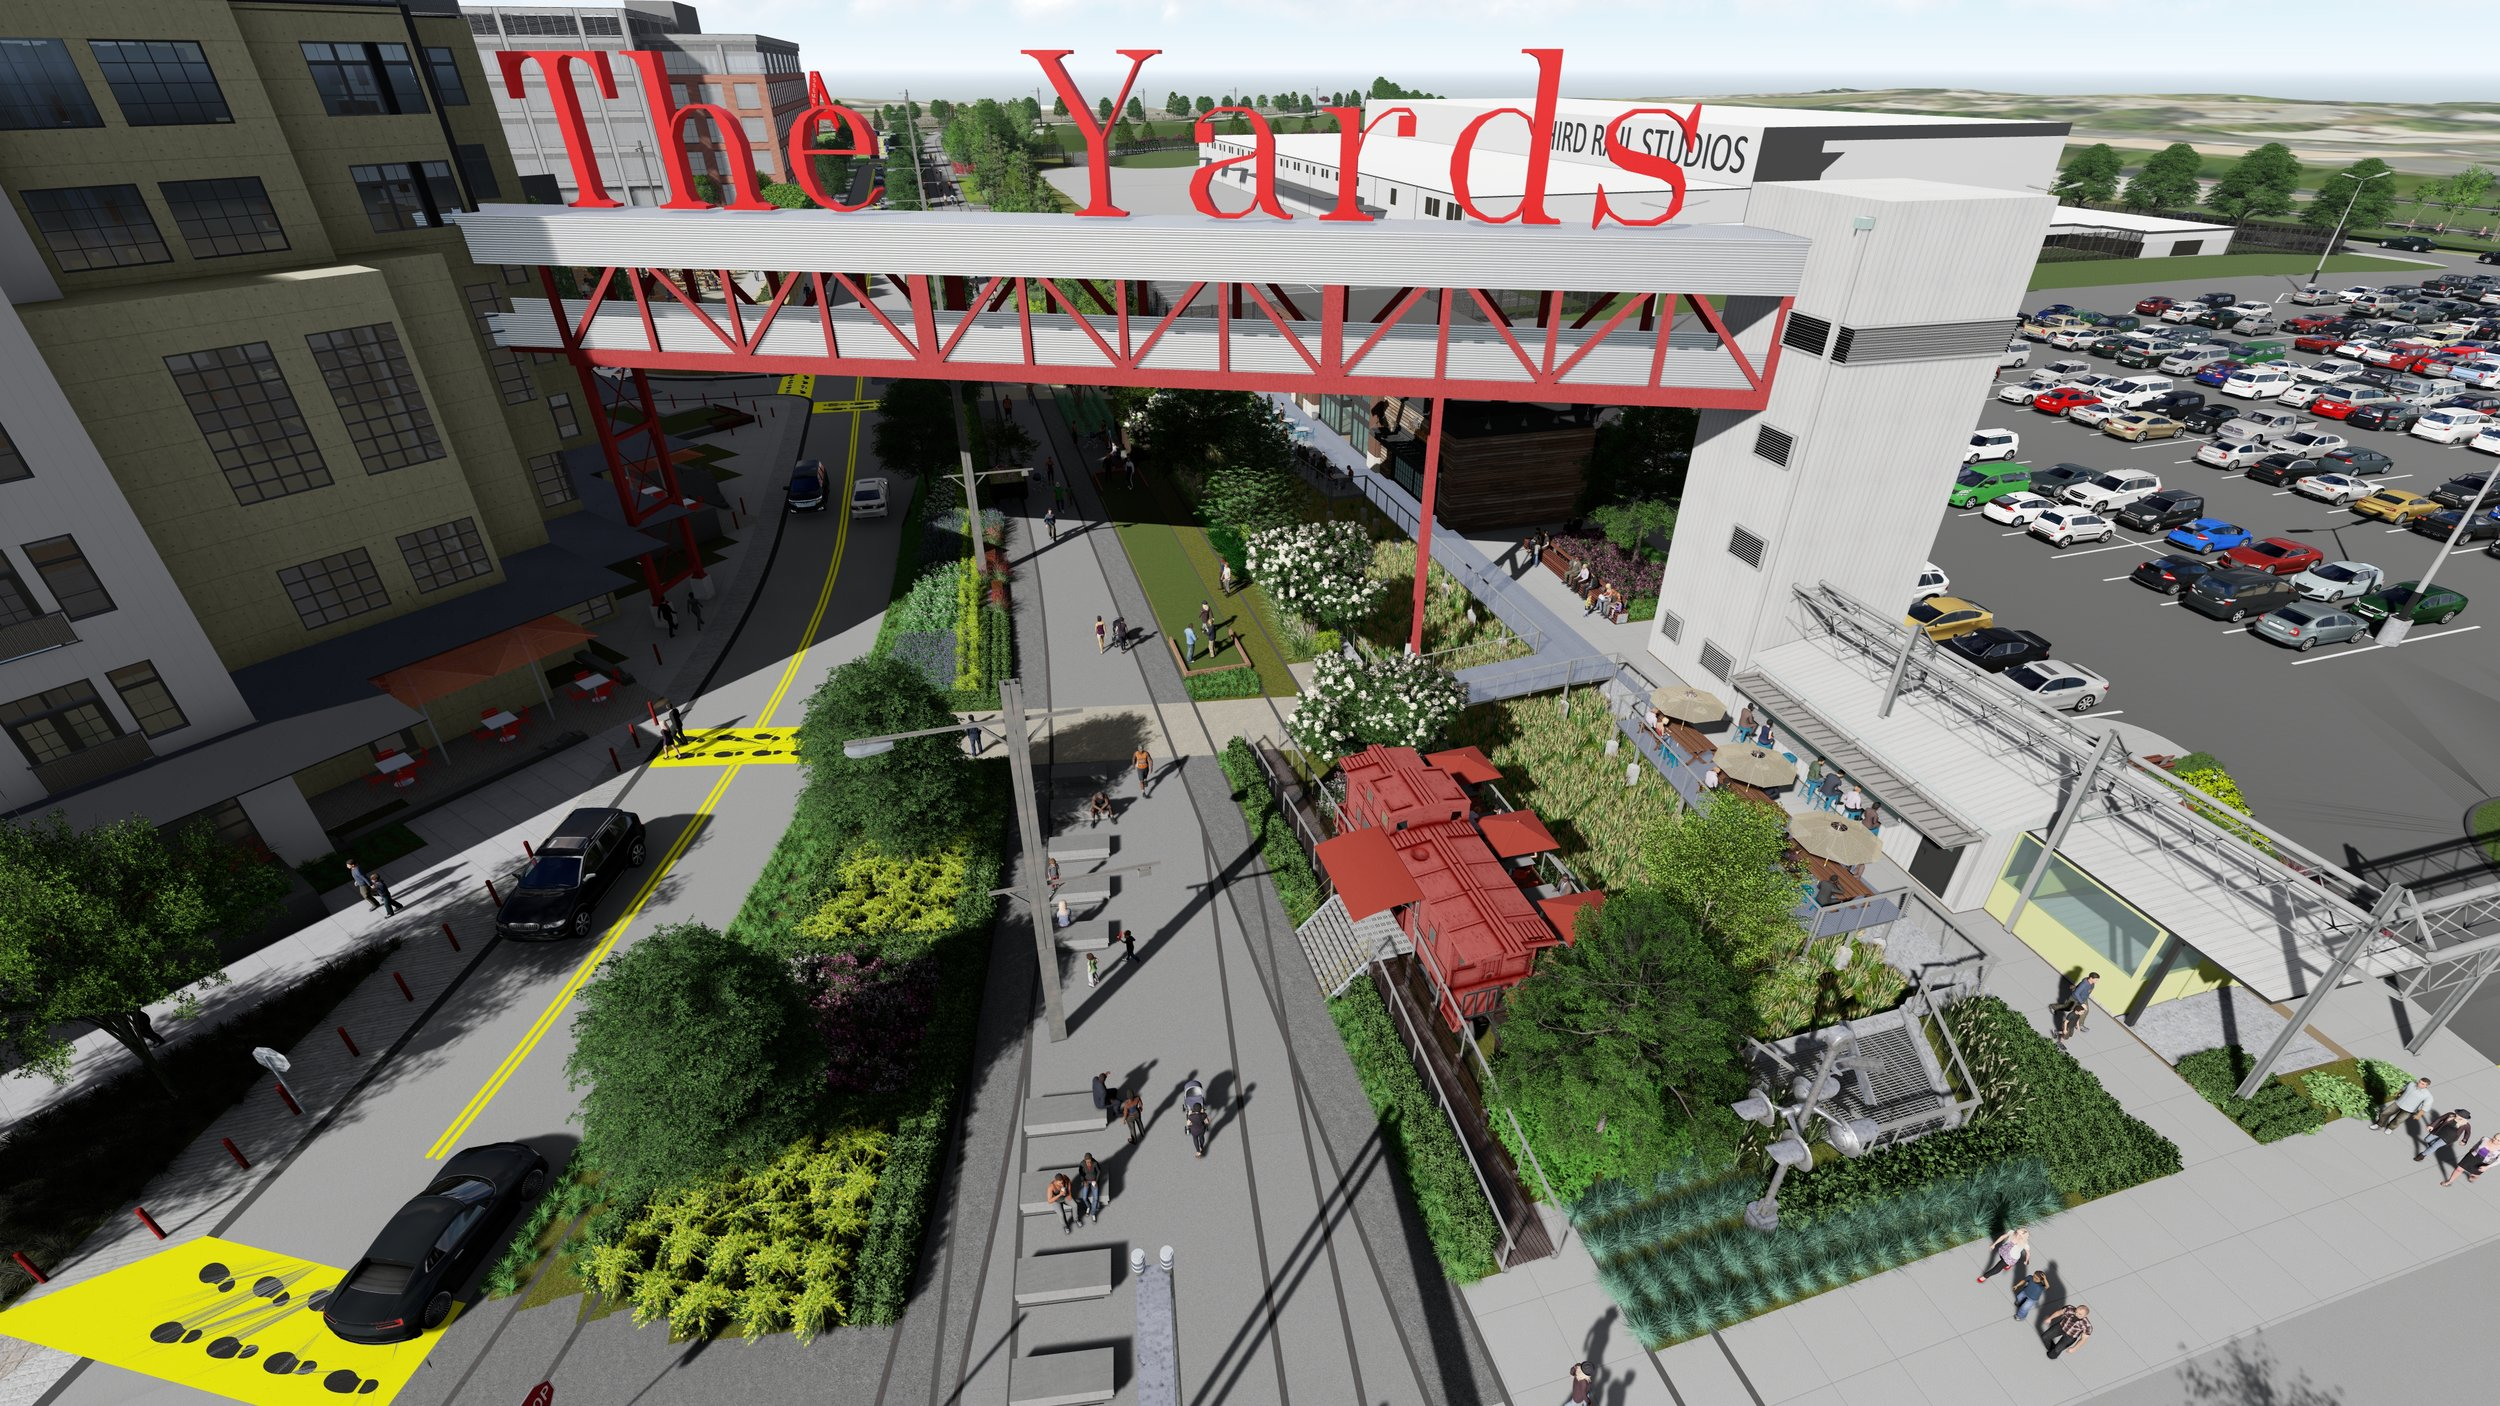 The Yards at the Assembly  in Doraville, Georgia by HGOR.